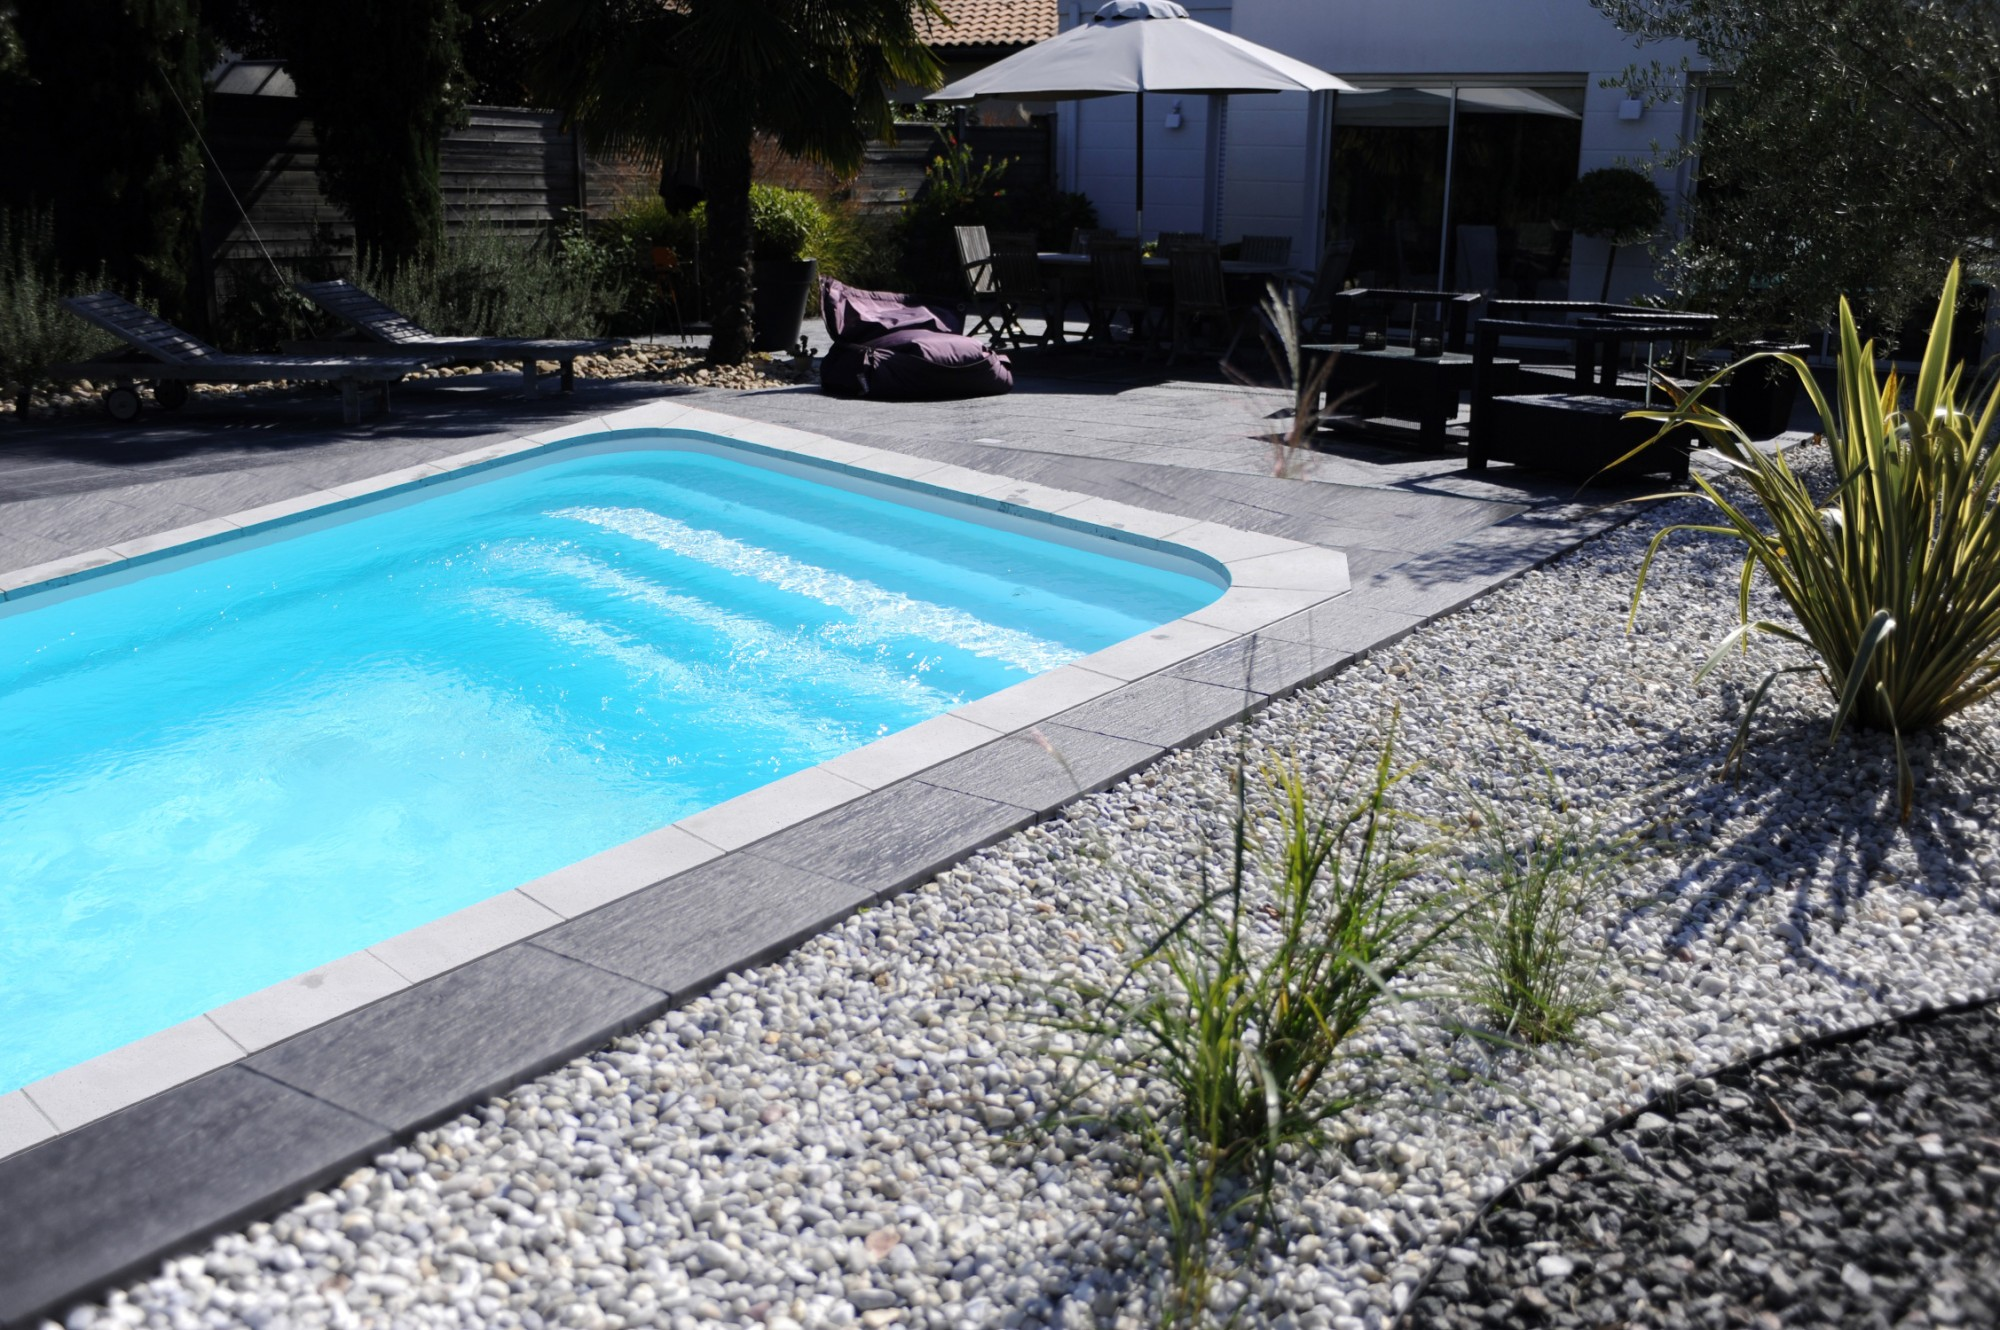 Mod le piscine coque rectangulaire 7x4 dans le var for Piscine var